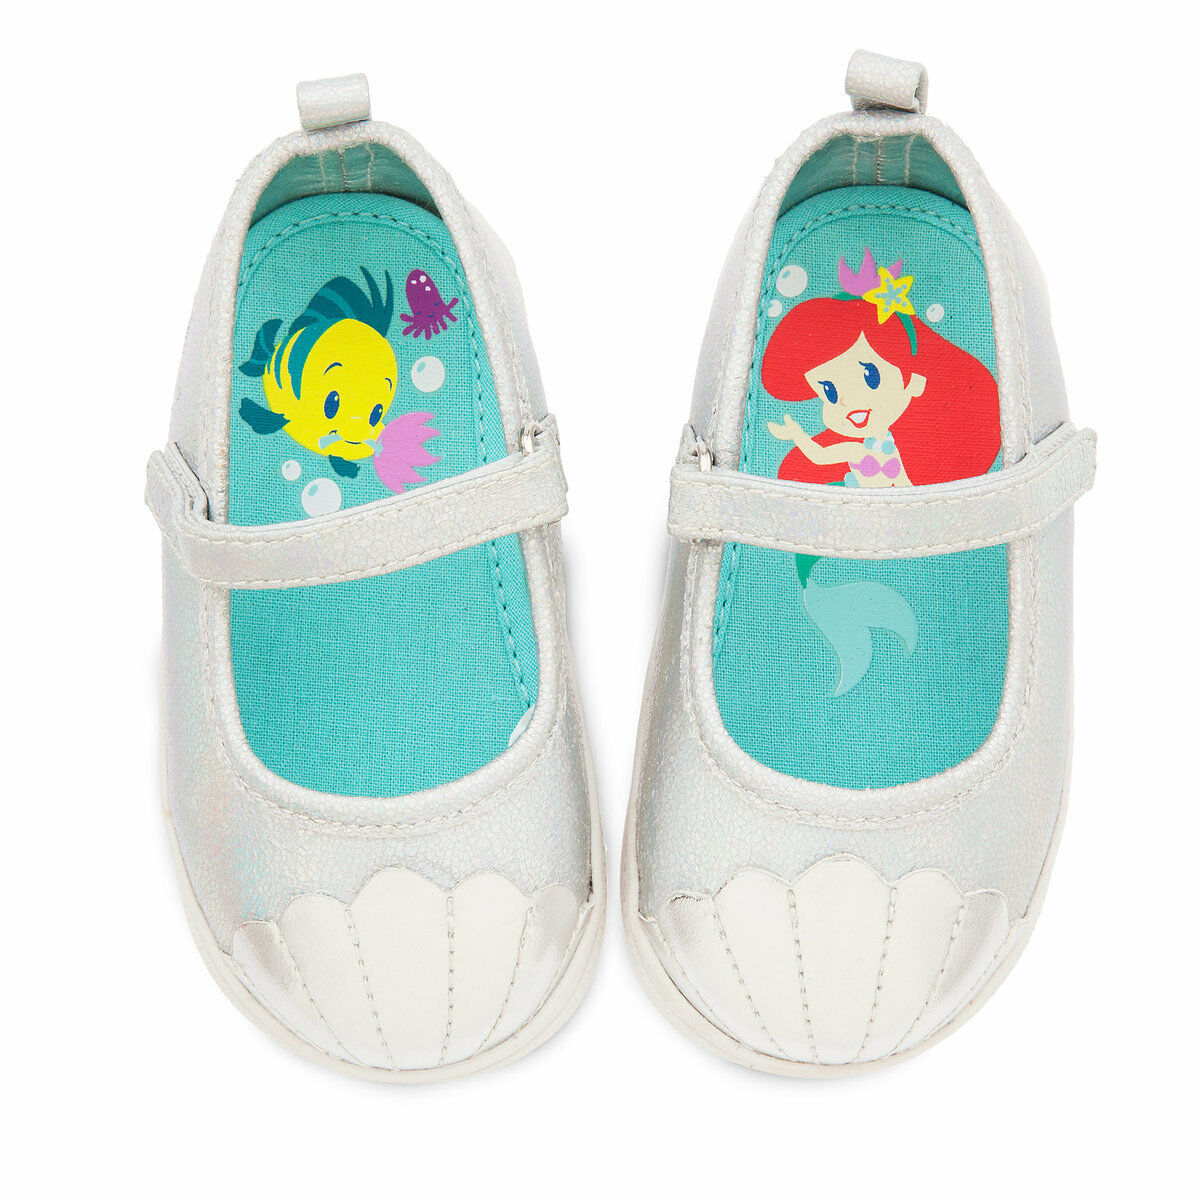 Disney Store Ariel Flounder Shoes Baby Size 3 5 The Little Mermaid 0-18 Mo 4